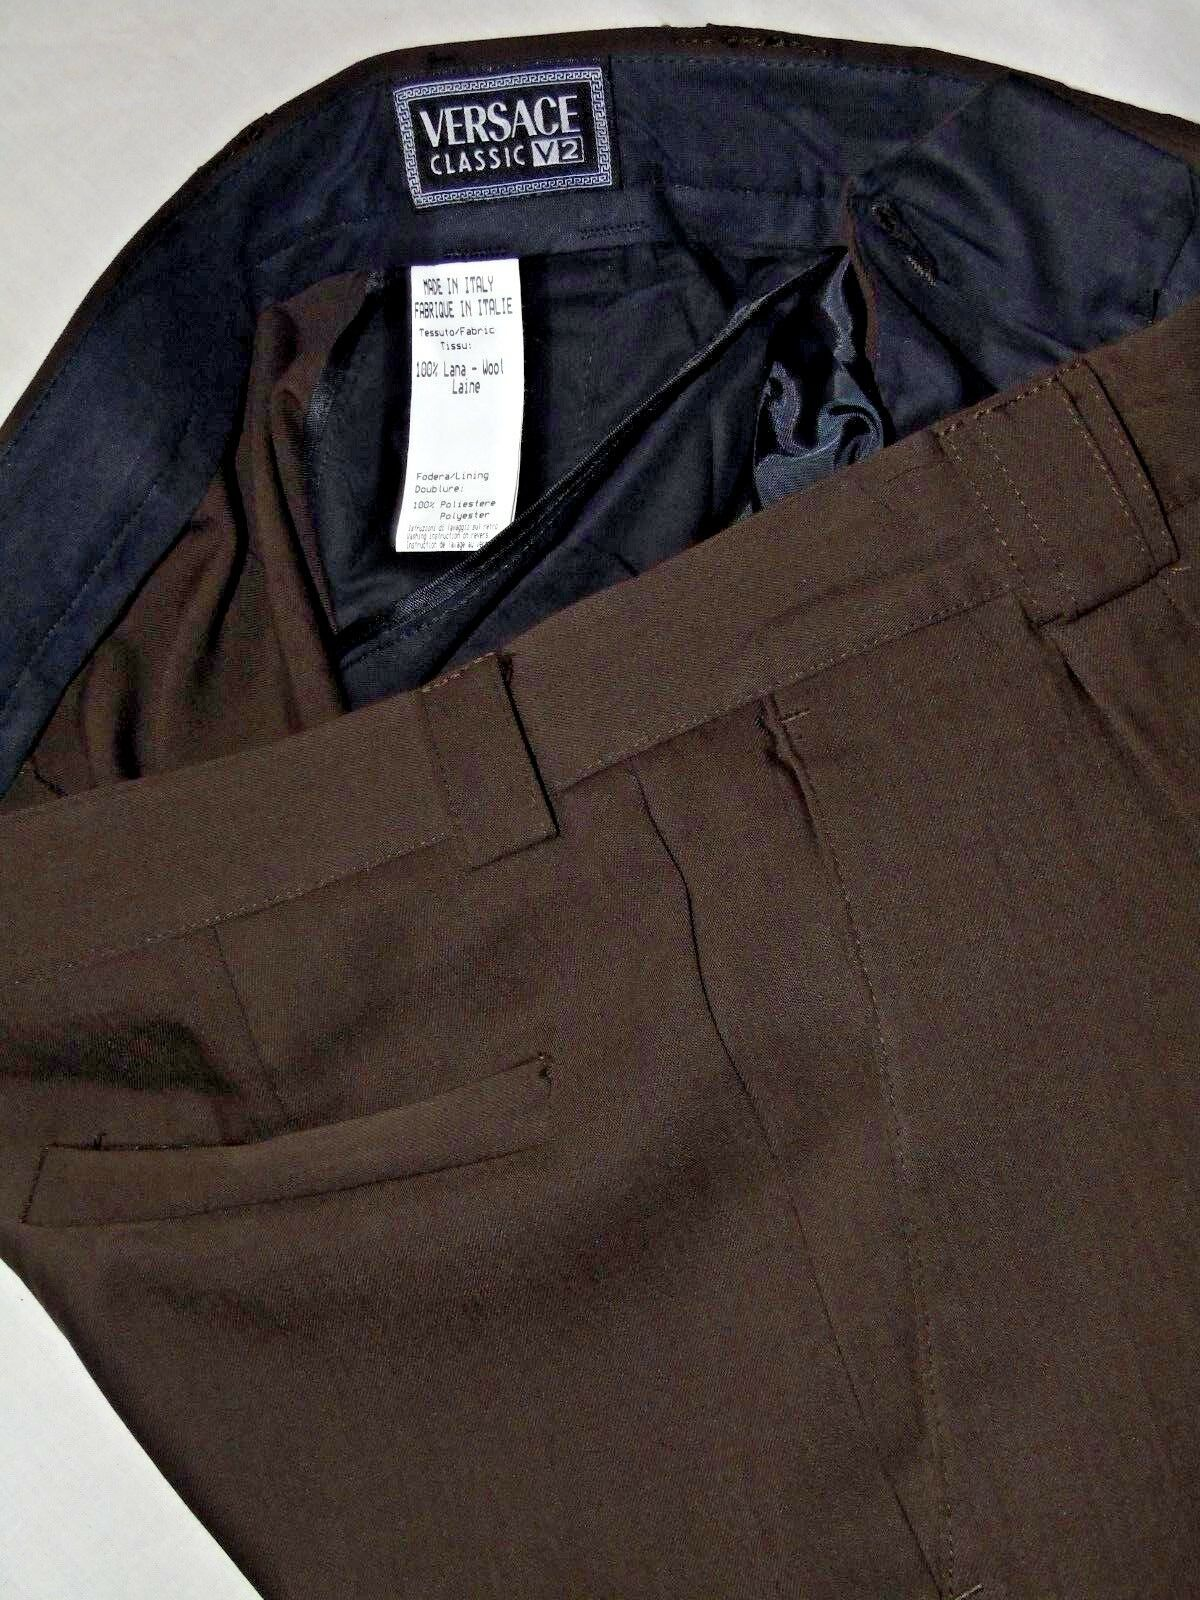 VERSACE CLASSIC V2 SMART CLASSIC DESIGNER BROWN WORK DRESS TROUSERS W34 31